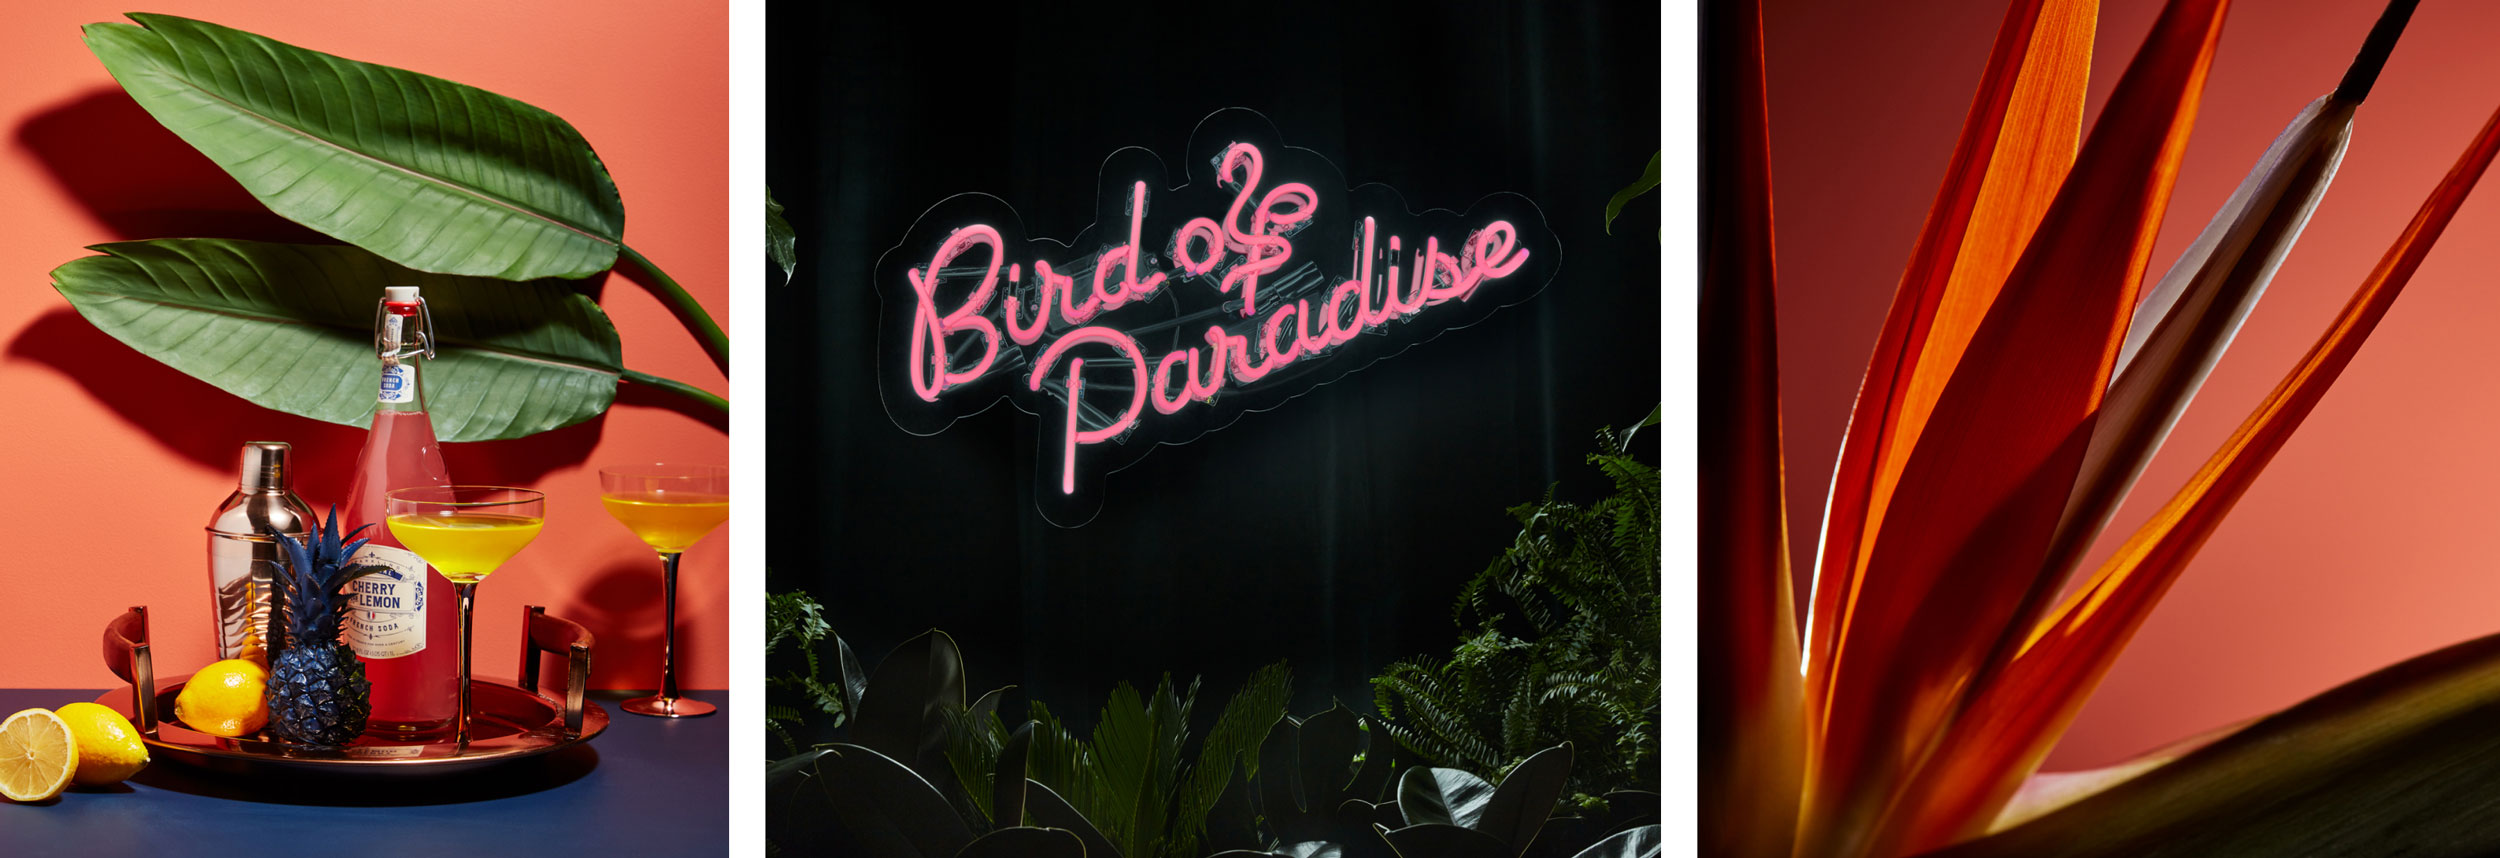 A moodboard of a vibrant cocktail mix, a neon sign and close up of a tropical plant.